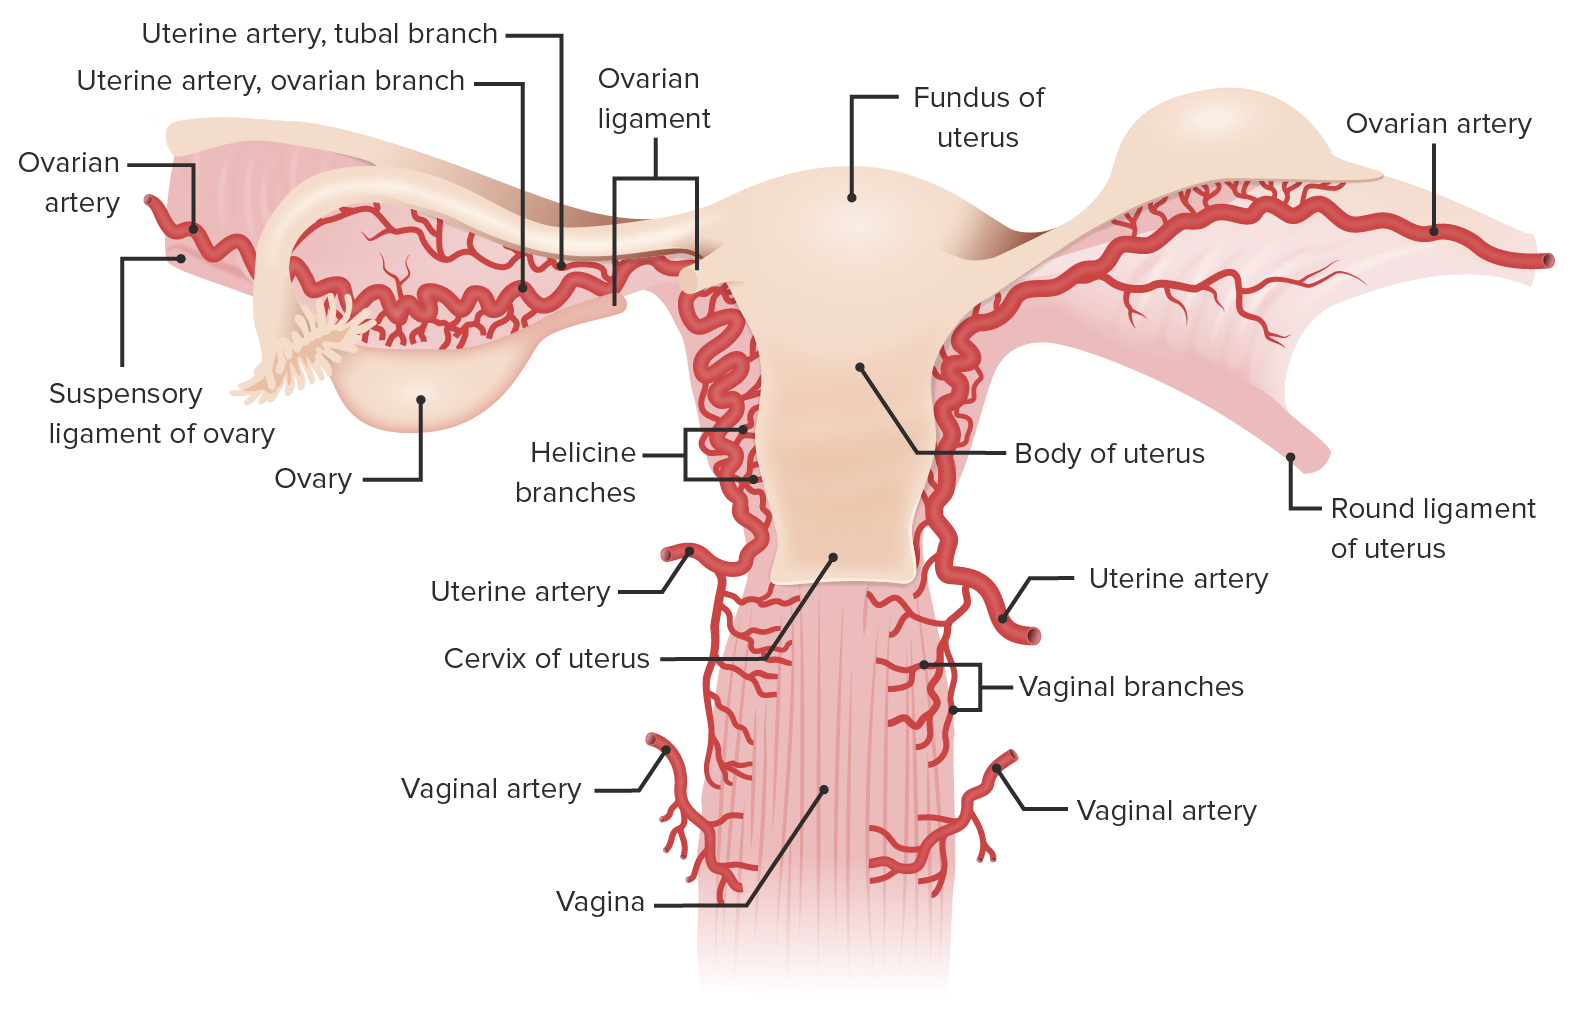 Blood supply of the uterus and ovaries